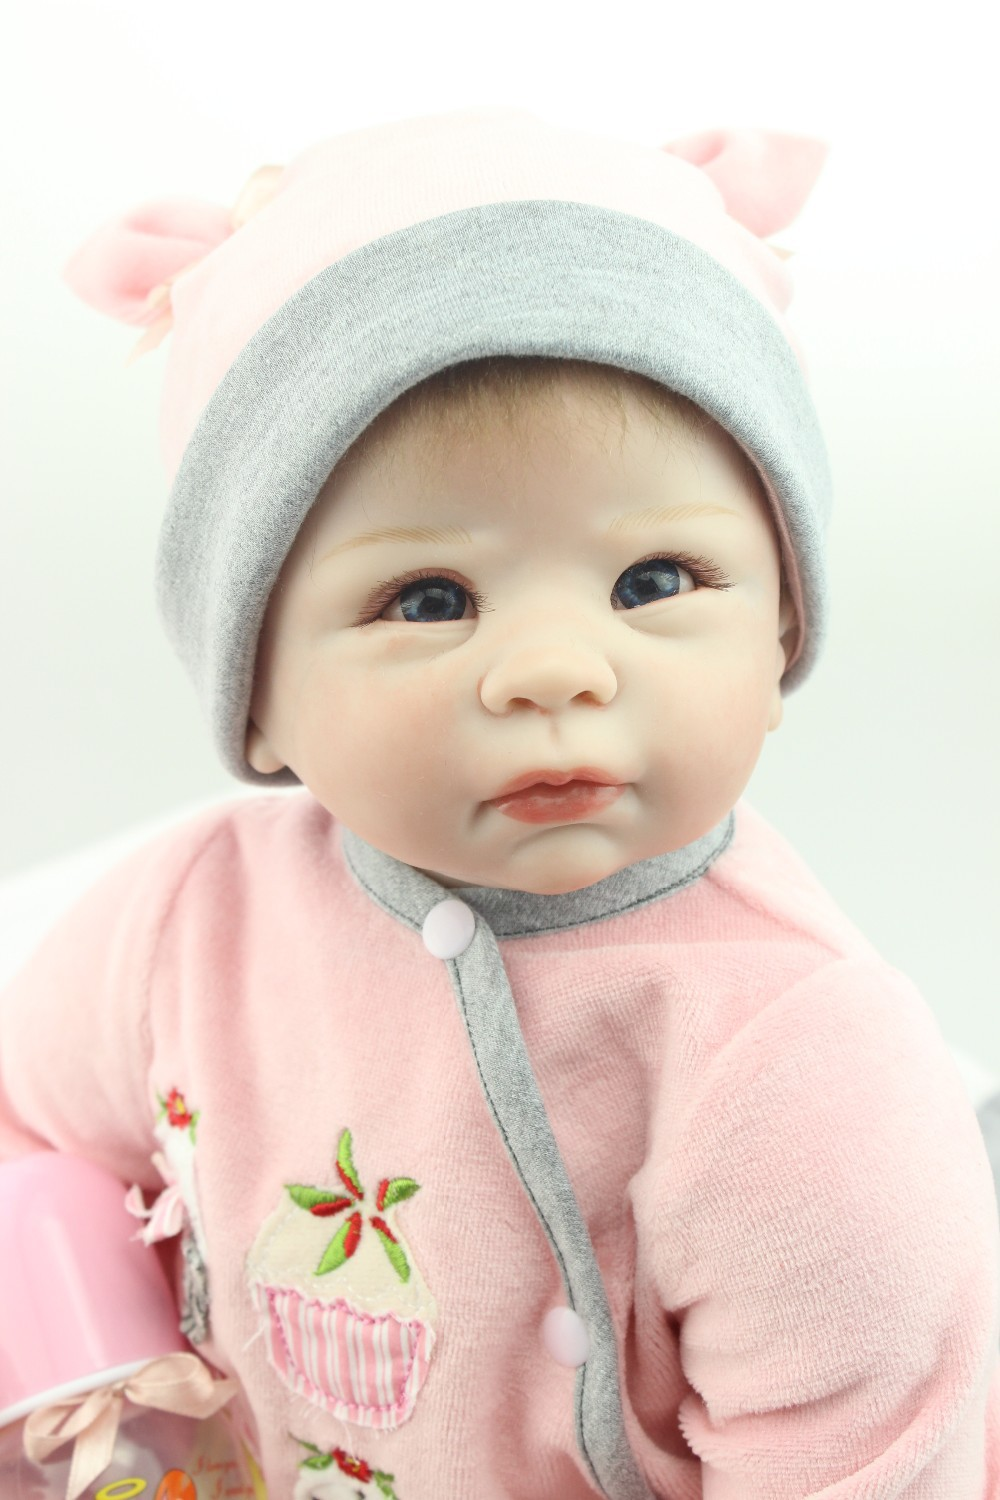 doll alive reborn doll with soft real gentle touch free shipping 22inch reborn baby doll lifelike soft silicone vinyl 22inch 55cm reborn baby doll silicone vinyl soft real touch with soft mohair lifelike newborn baby christmas gift baby alive